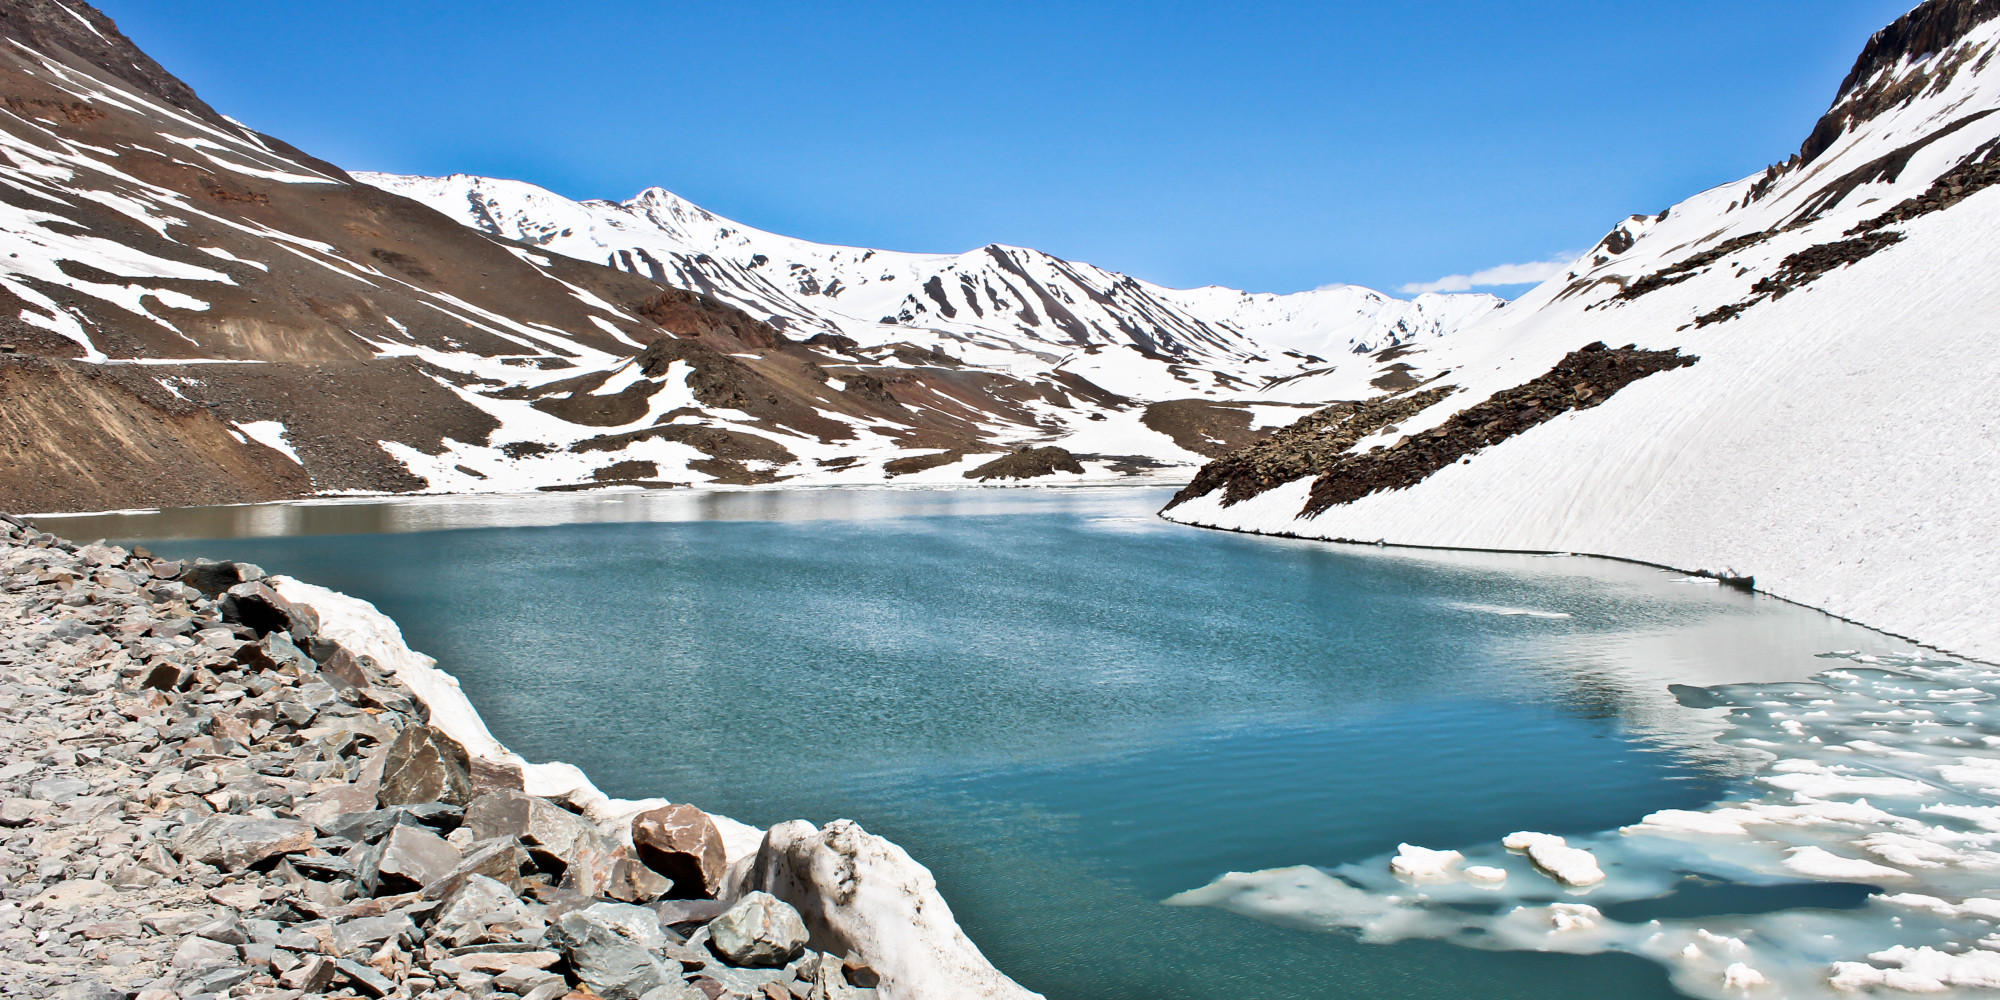 Rohtang - Best tourist place to visit in Manali